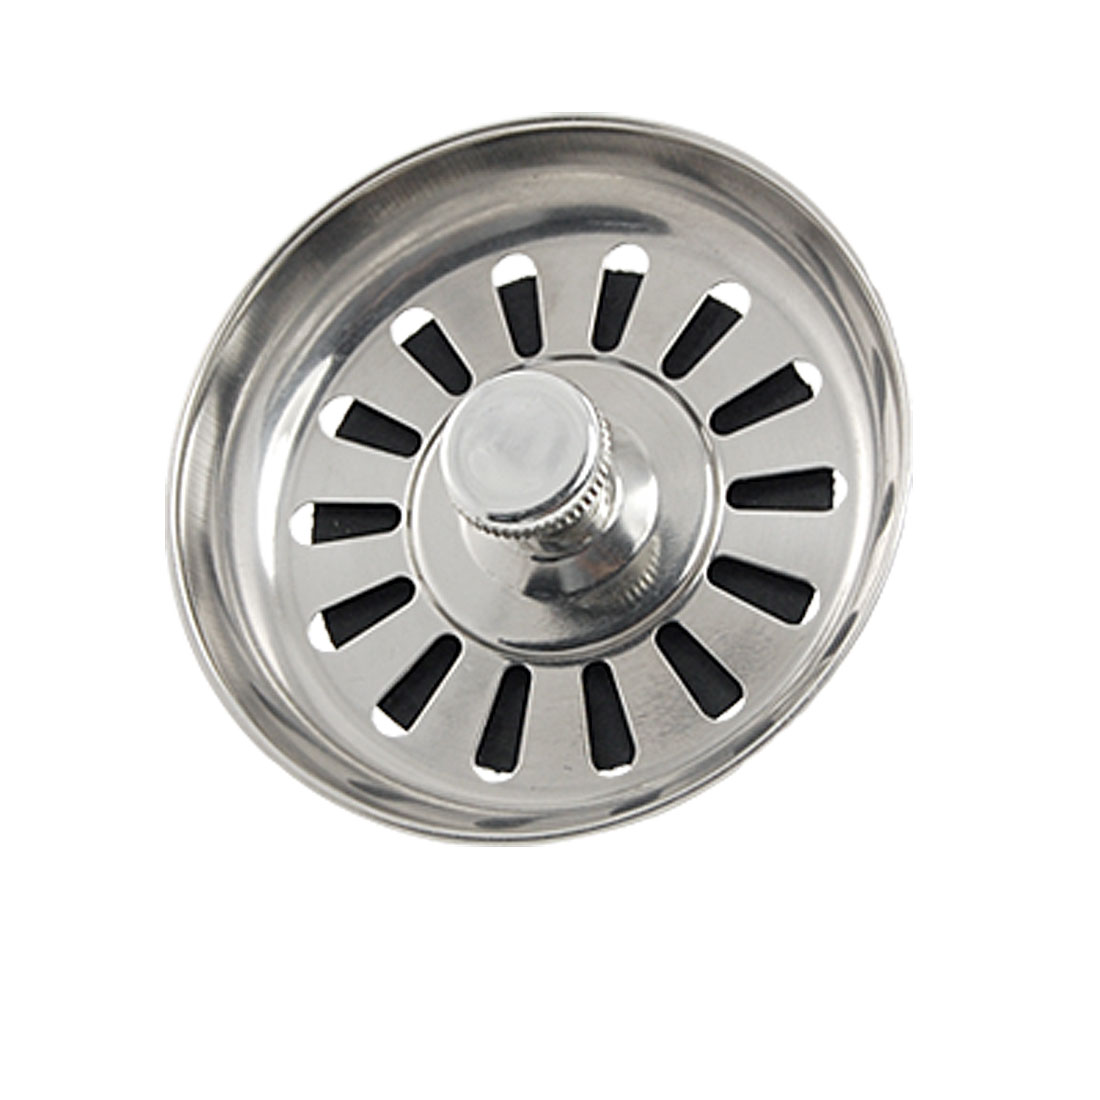 Kitchen Wash Basin Metal Garbage Disposer Sink Strainer Stopper